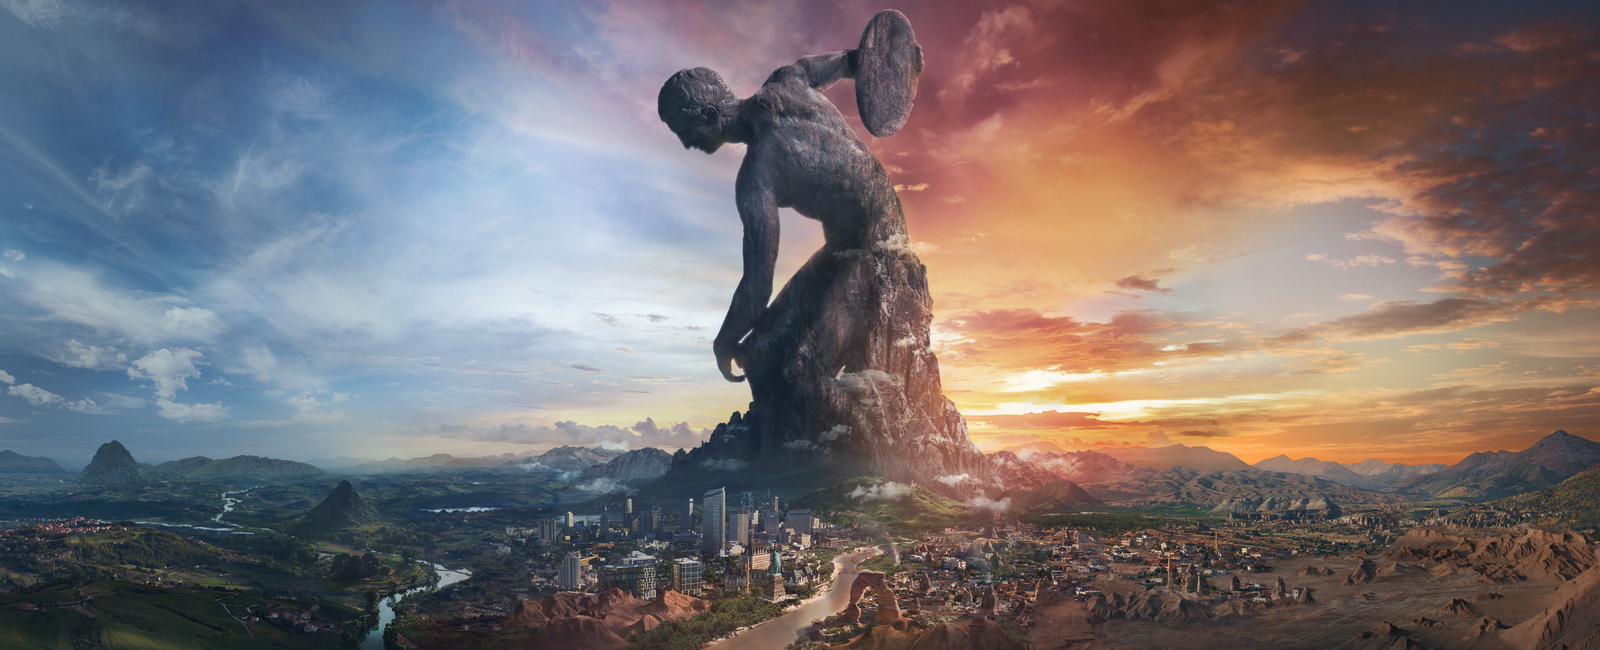 the 6 key features of civilization Historians have identified the basic characteristics of civilizations six of the most  important characteristics are: cities, government, religion, social structure,.